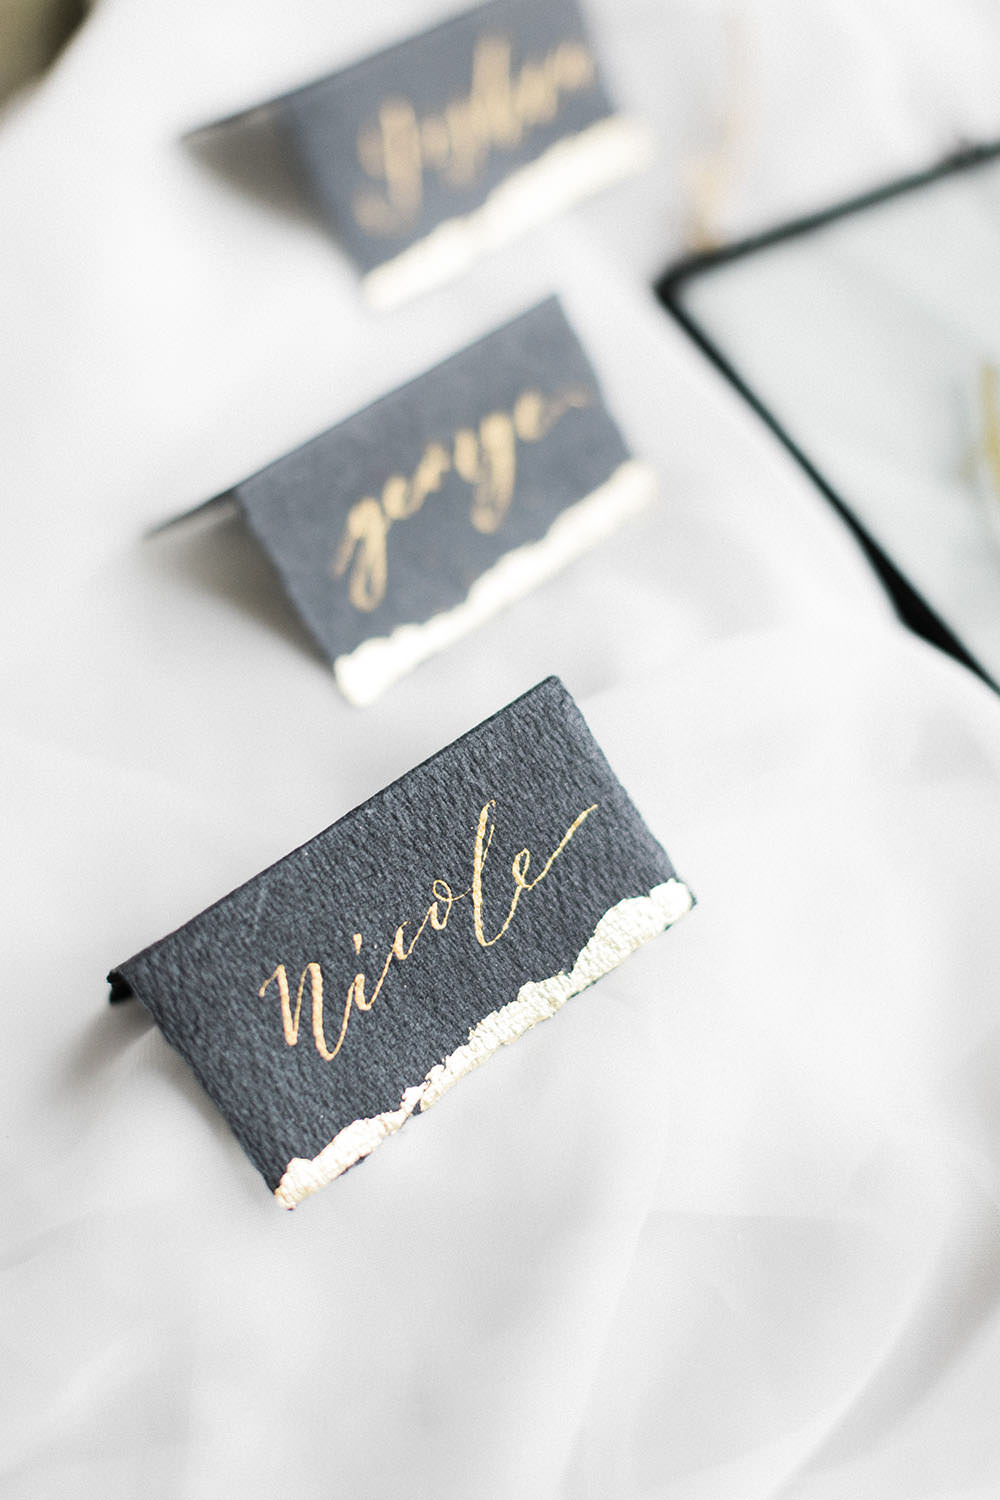 Black Calligraphy Metallic Place Name Card Burgundy Gold Wedding Ideas Sarah Porter Photography